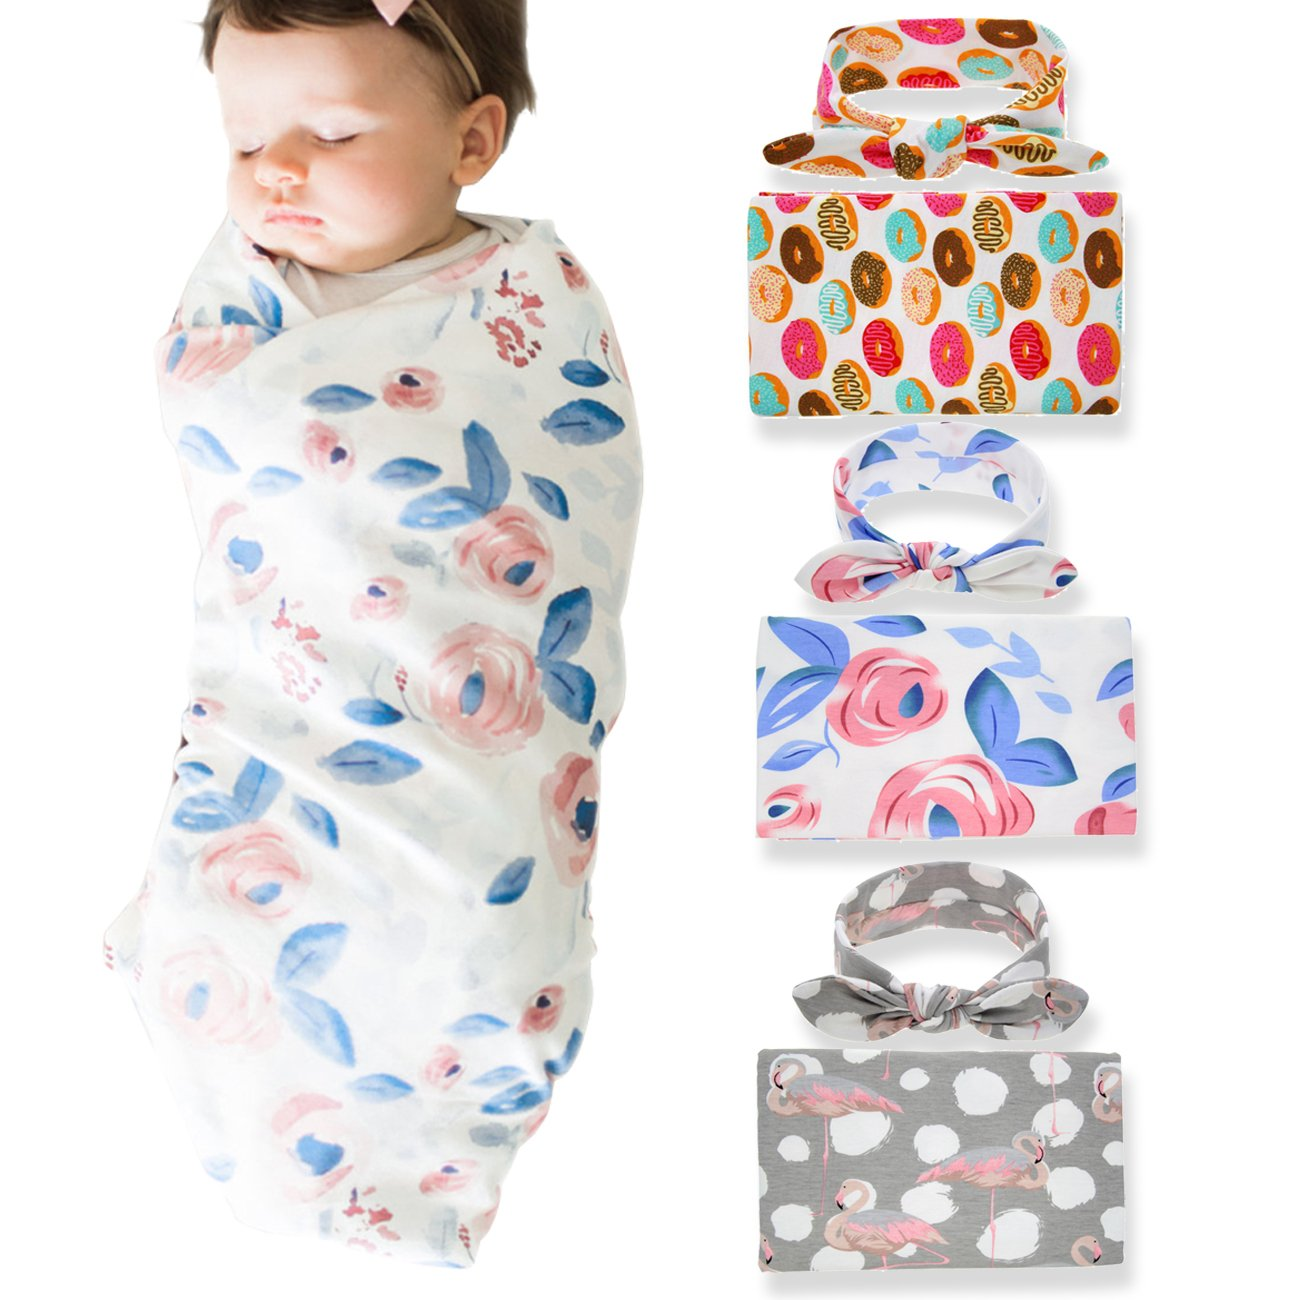 DRESHOW Newborn Floral Swaddle BQUBO Receiving Blanket with Headbands Hats Sleepsack Toddler Warm IC0003 IC0003-4A